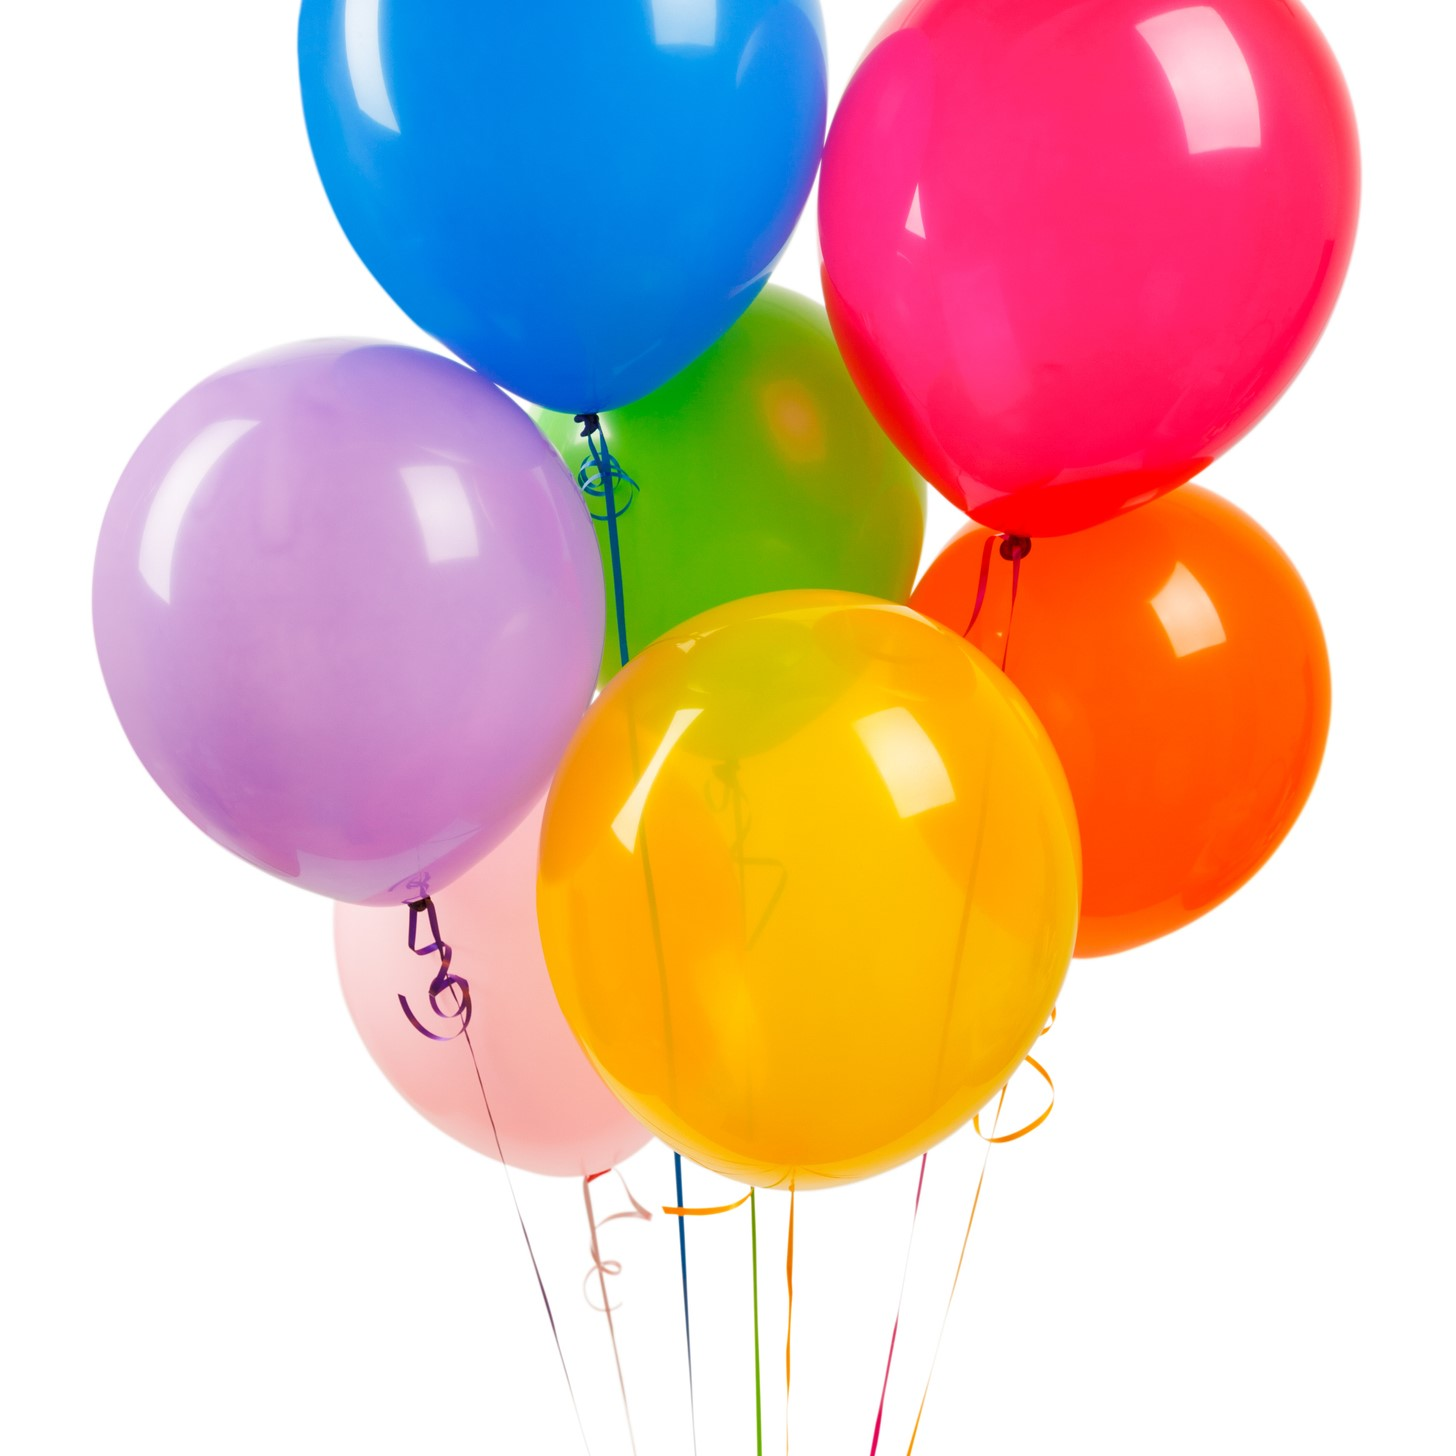 Party balloons like latex balloons, rubber balloons, or even biodegradable balloons